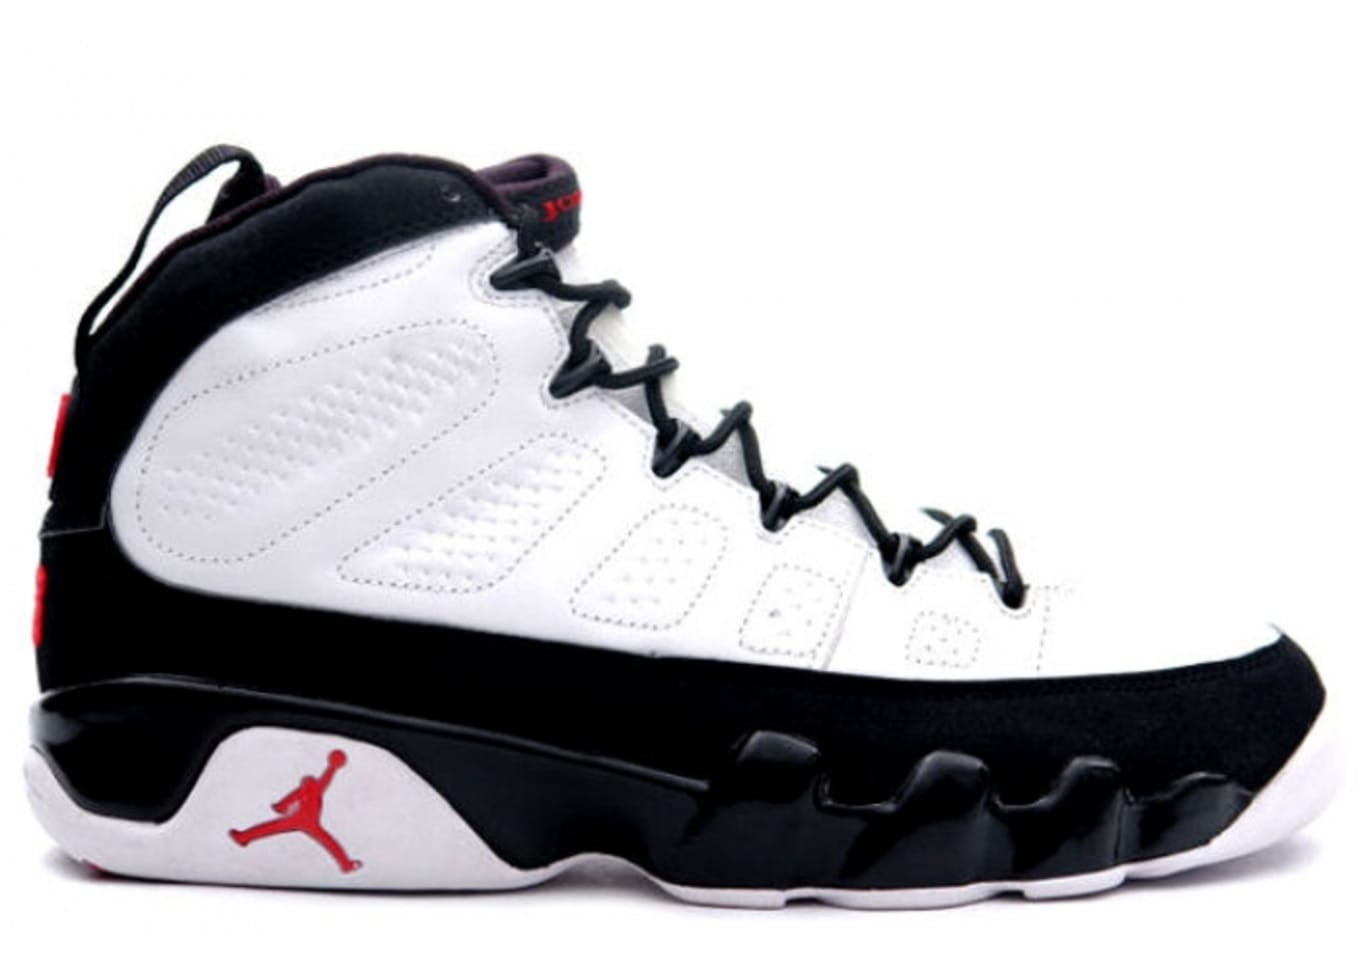 ec9be319e89 The Air Jordan 9 Price Guide | Sole Collector